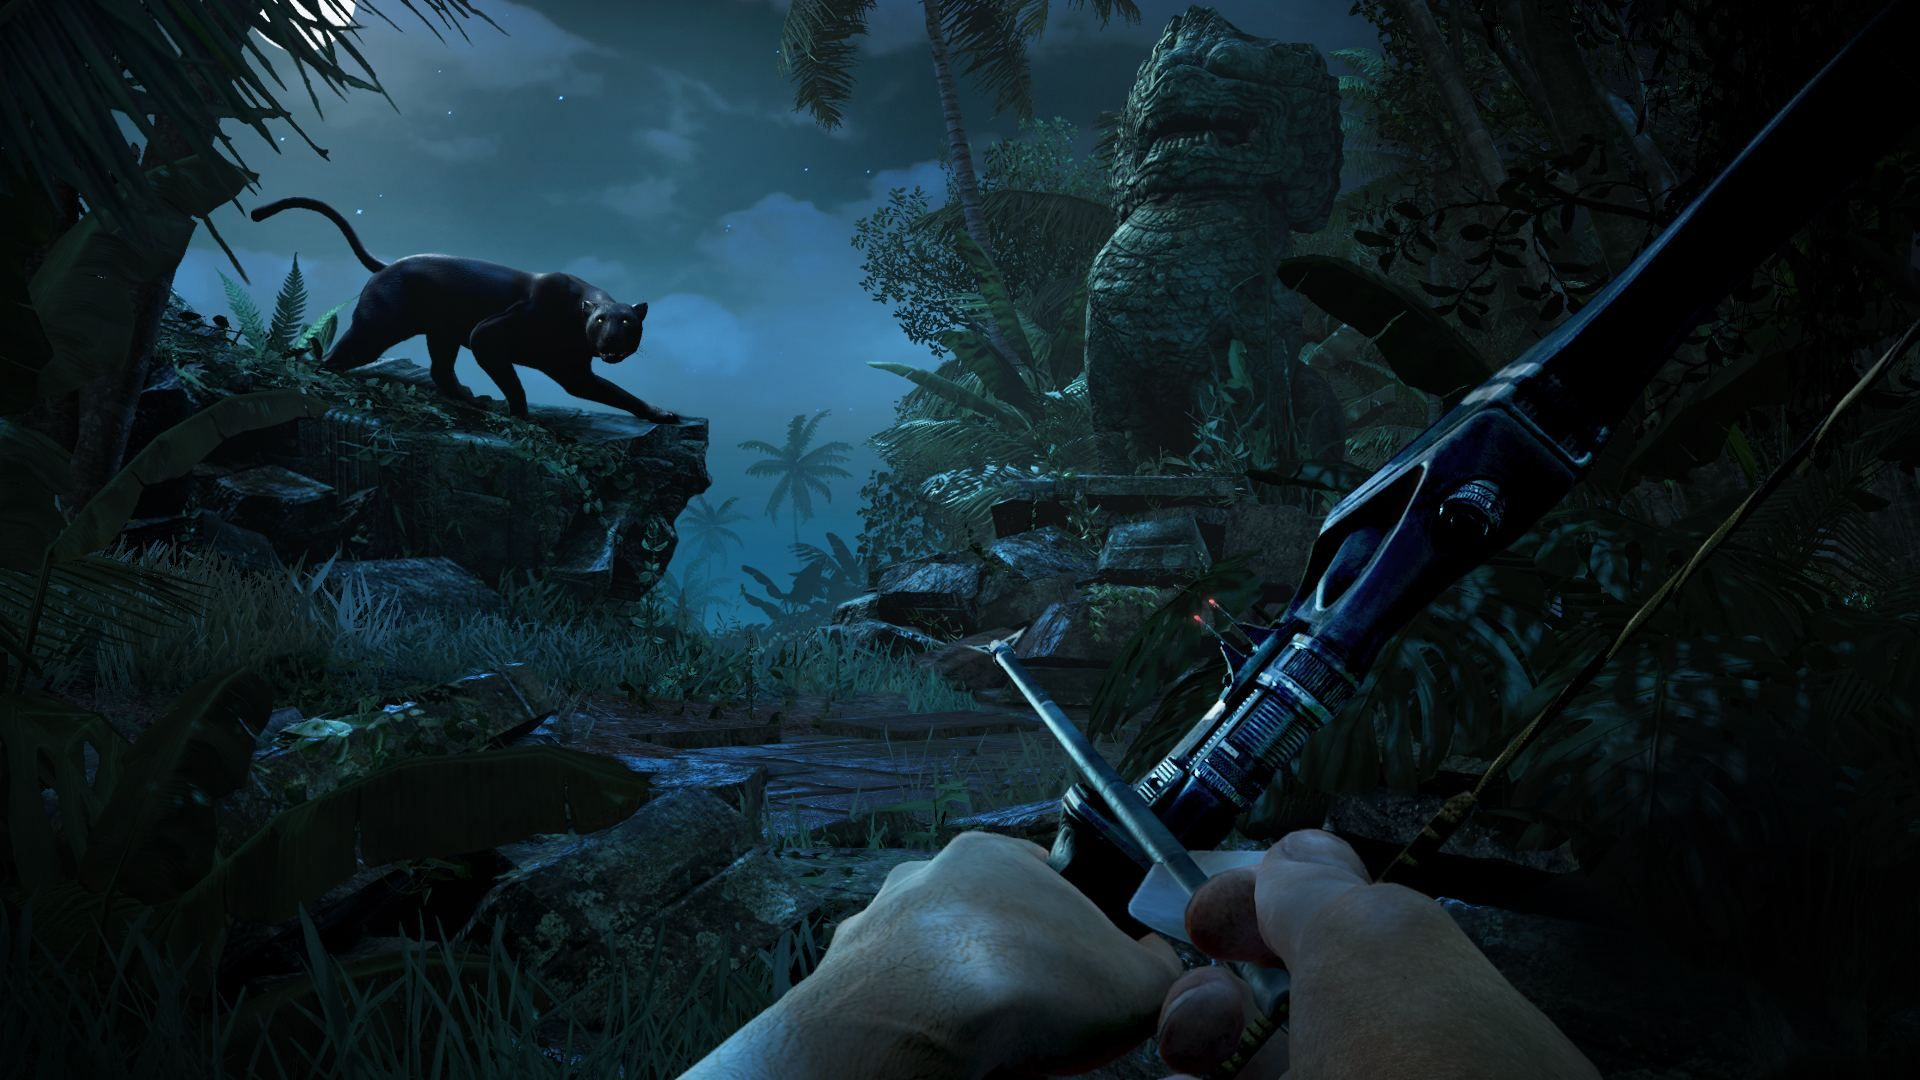 Far Cry 3 Official Website Official Screenshots Ubisoft Far Cry 3 Ubisoft Crying